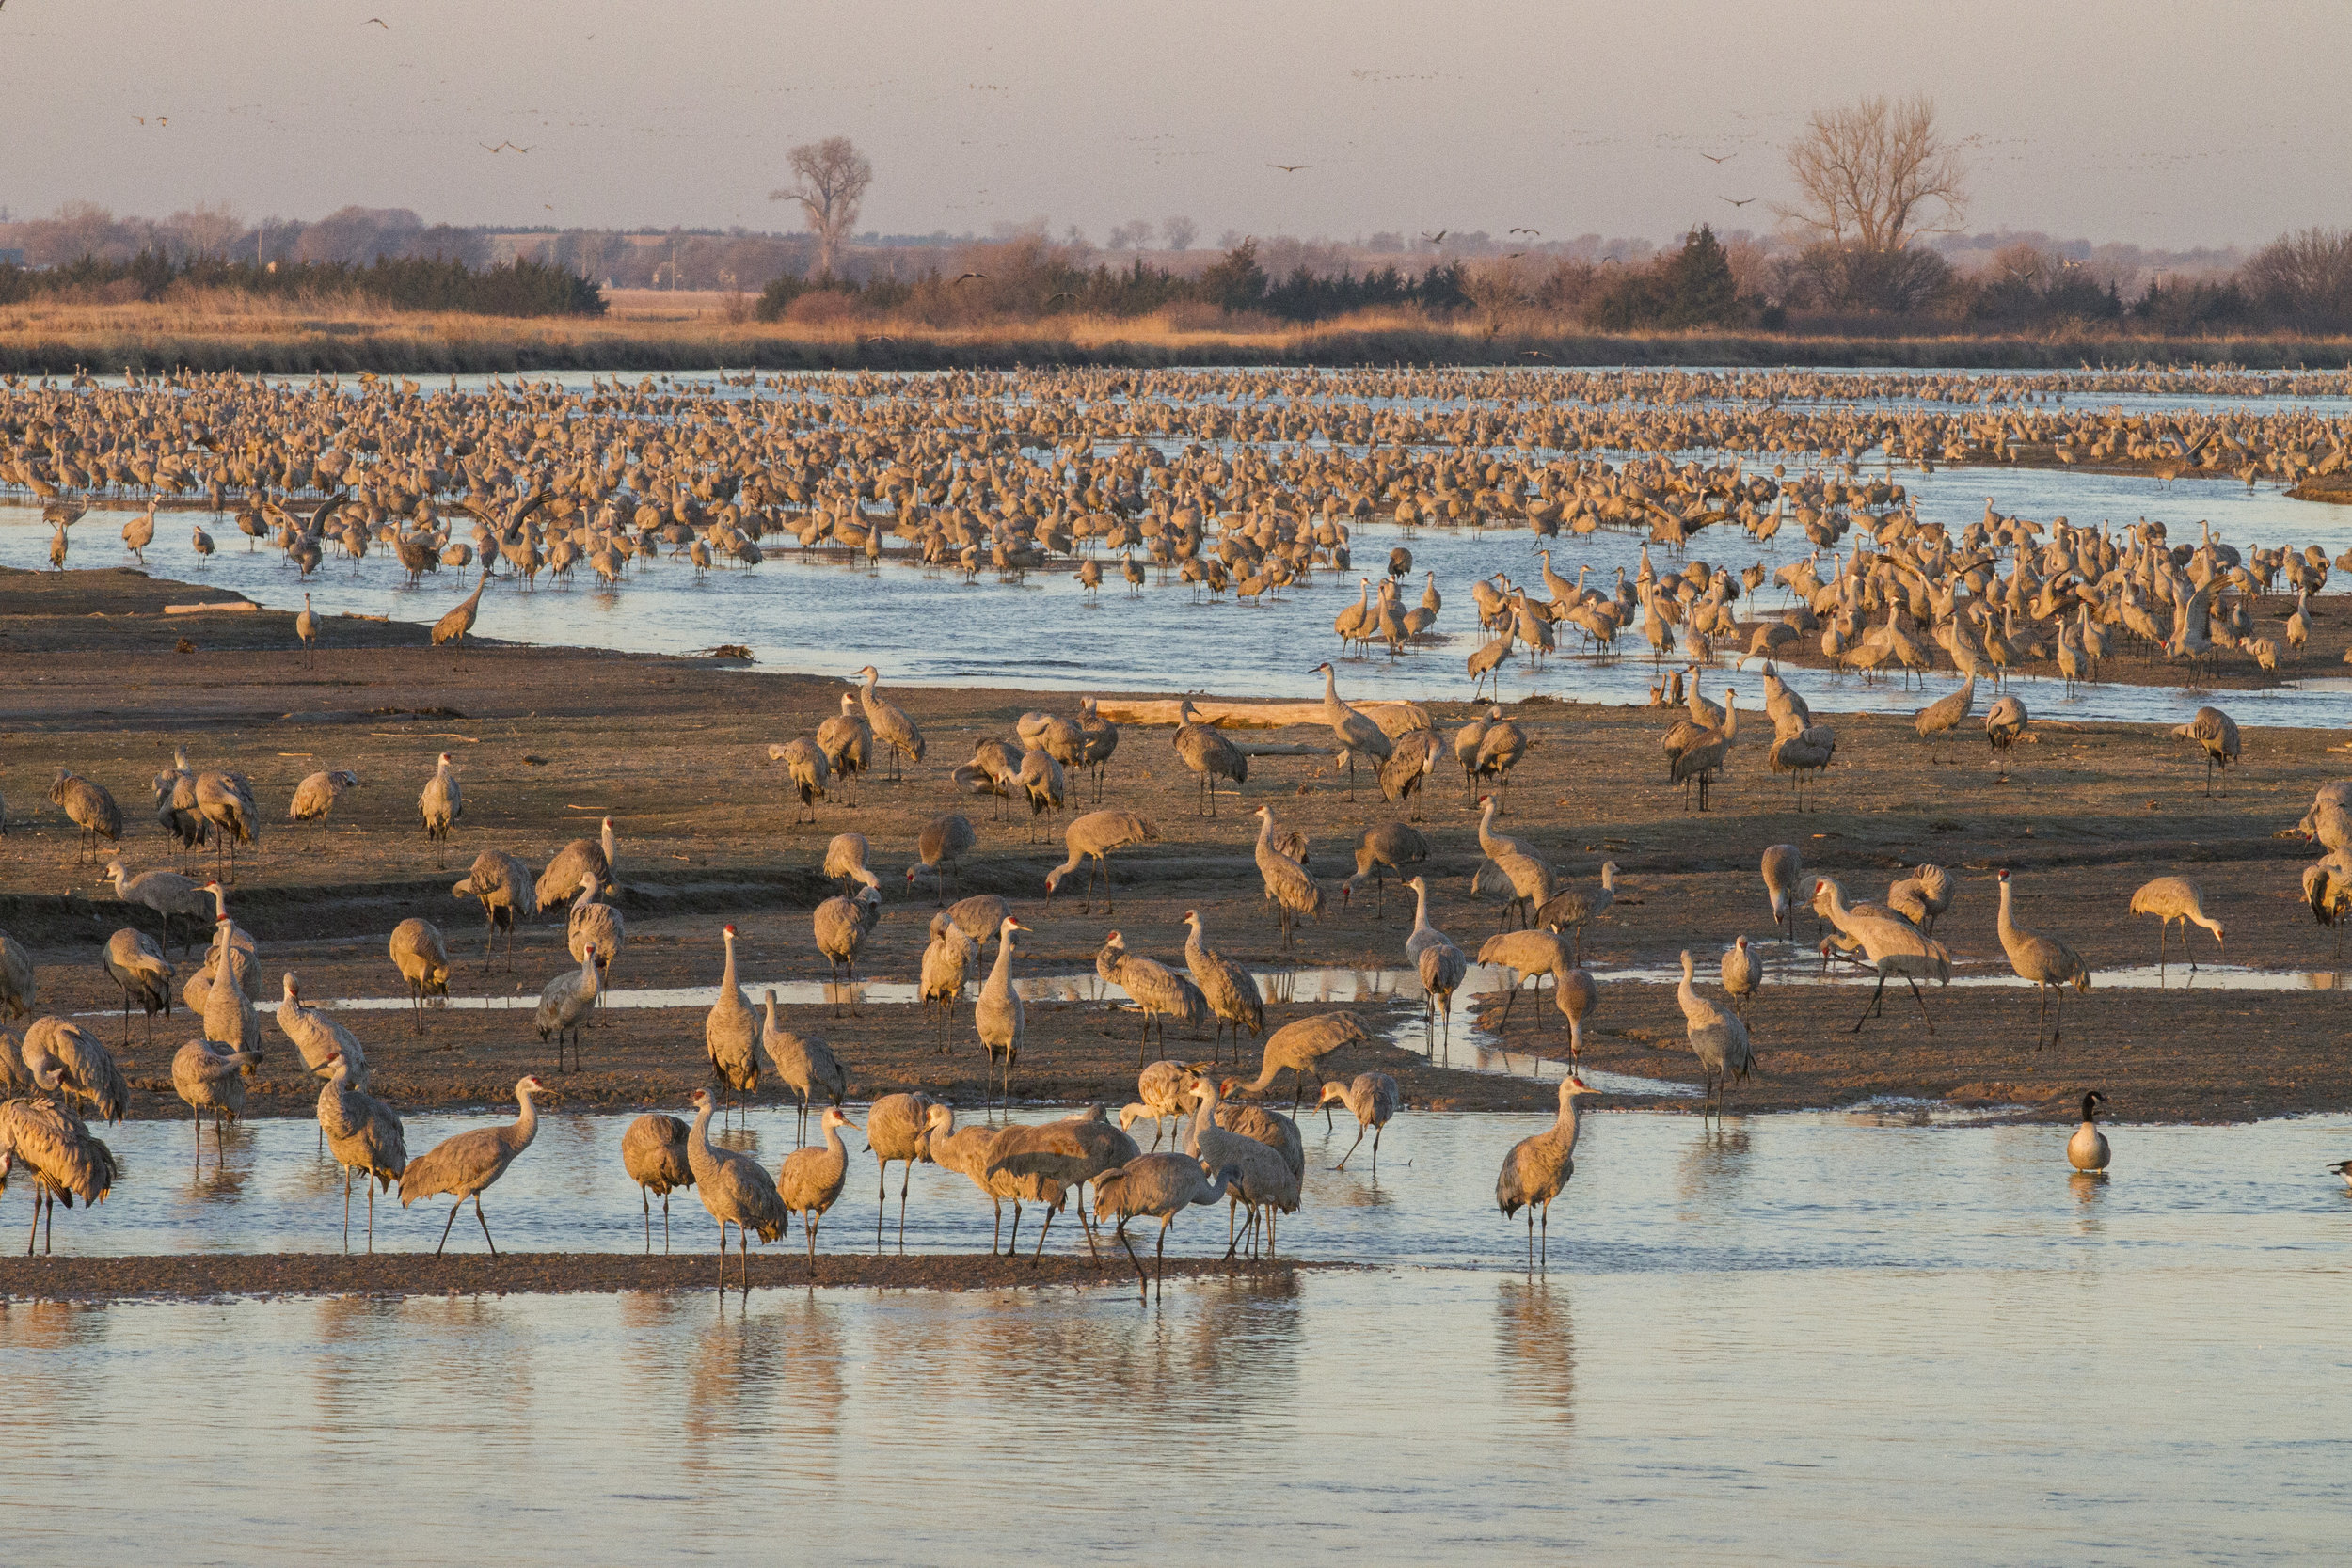 Crane migration on Mormon Island. Photo by: Ben Gottesman, Center for Global Soundscapes*